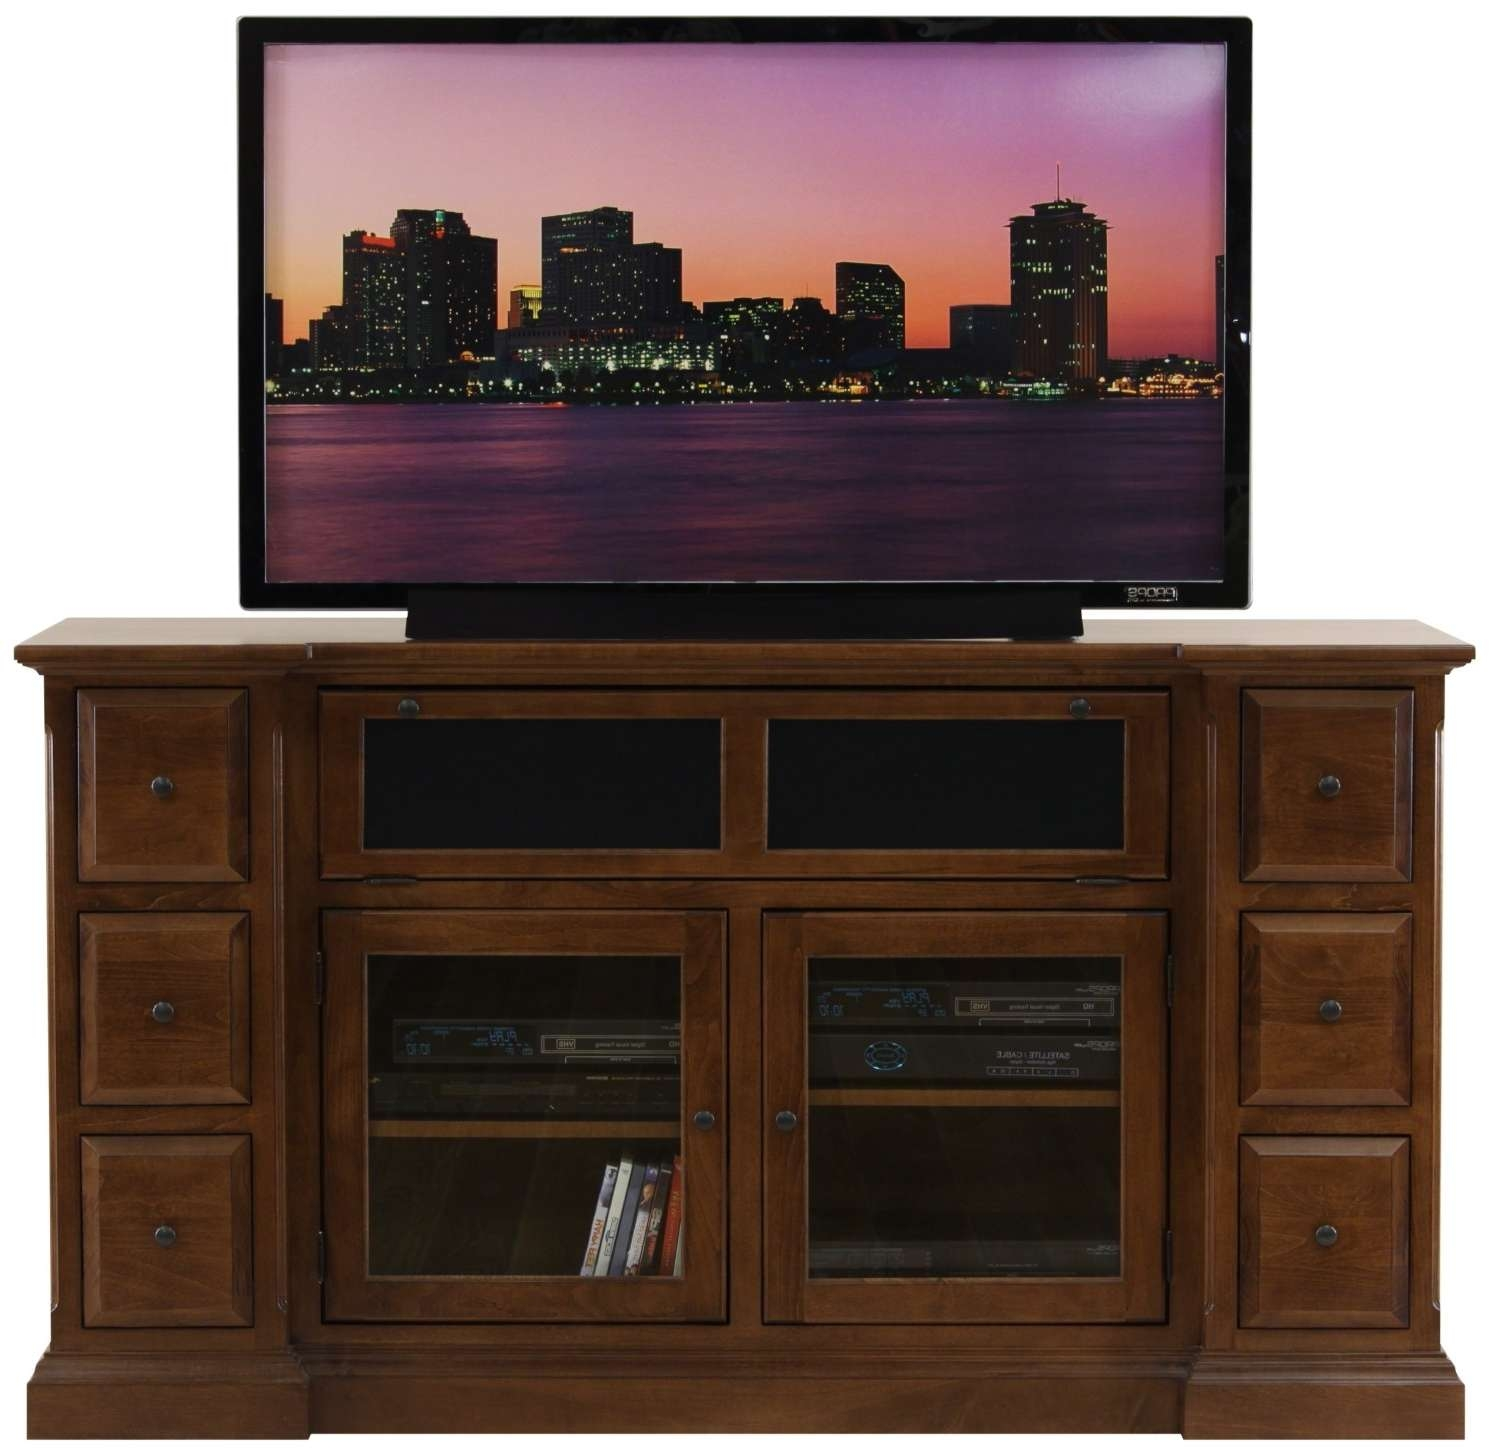 Fresh Denver Cherry Wood Tv Stand Walmart #17102 Inside Cherry Wood Tv Cabinets (View 6 of 20)